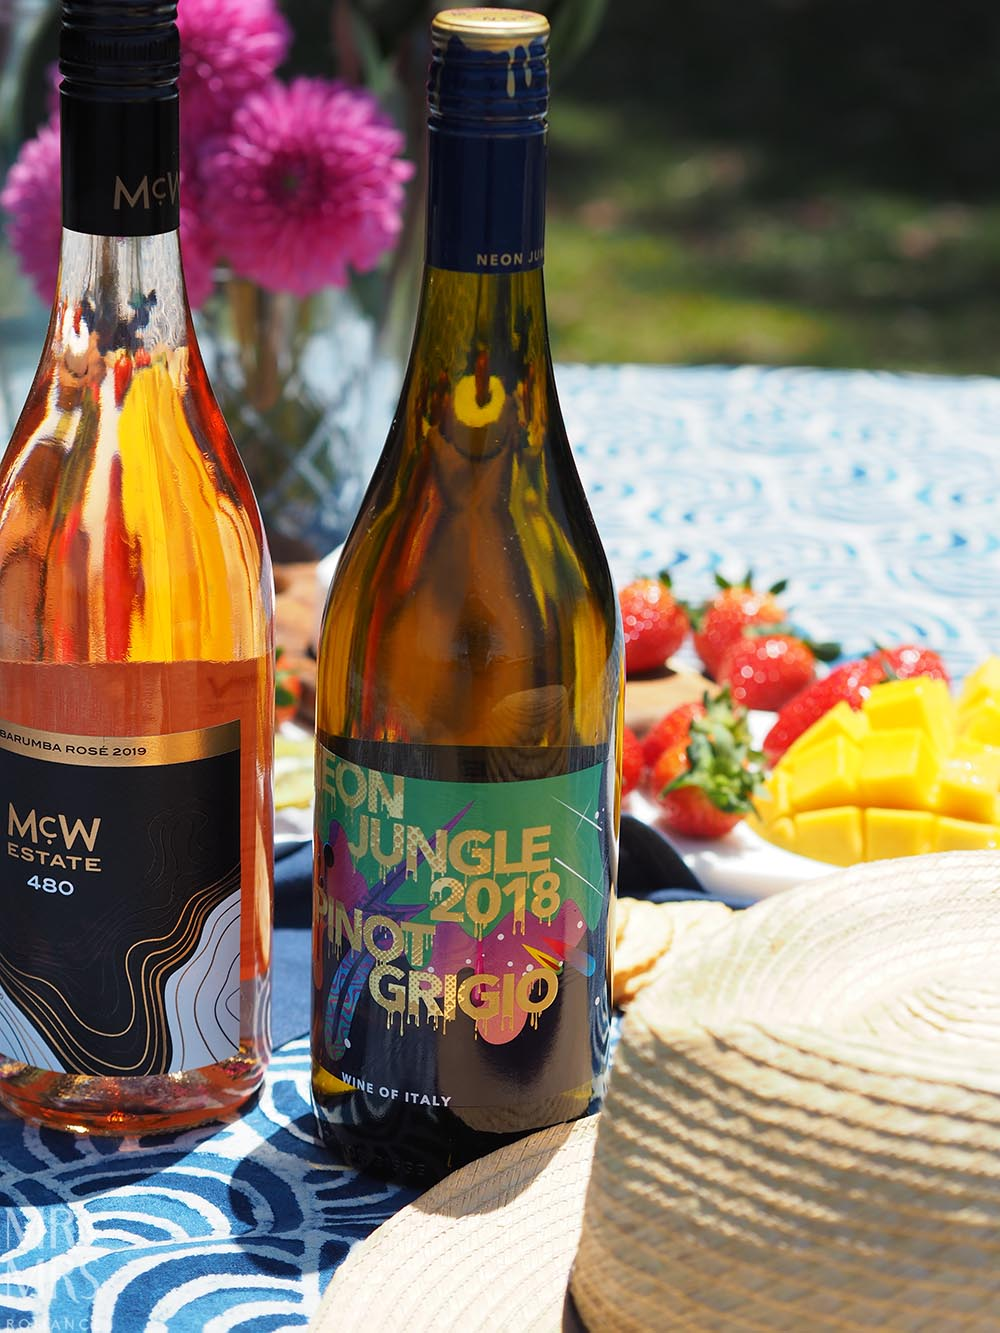 Summer party wines - Neon Jungle Pinot Grigio